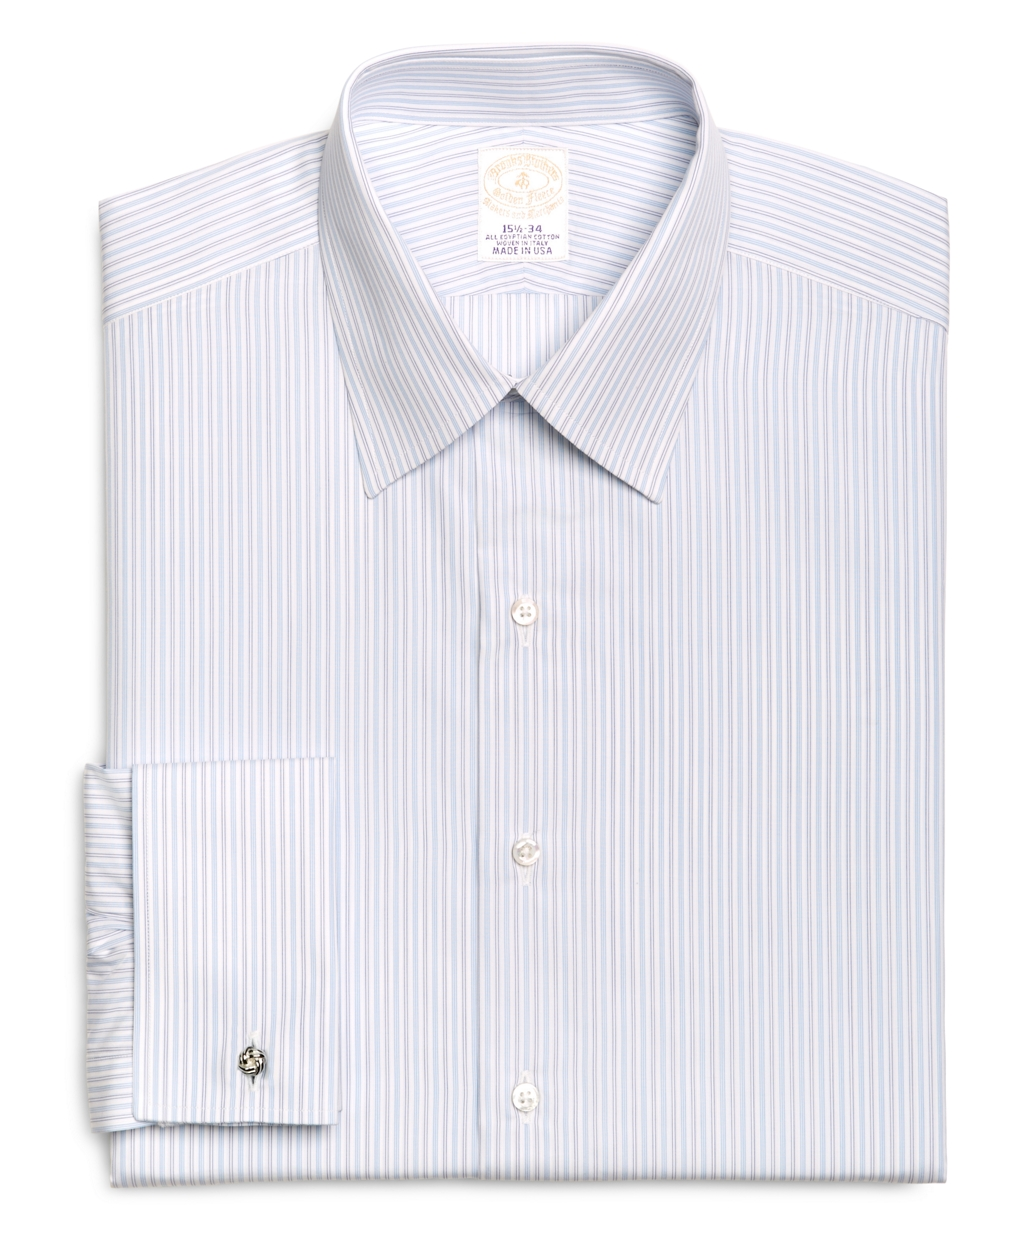 Lyst brooks brothers golden fleece madison fit french for Light blue french cuff dress shirt